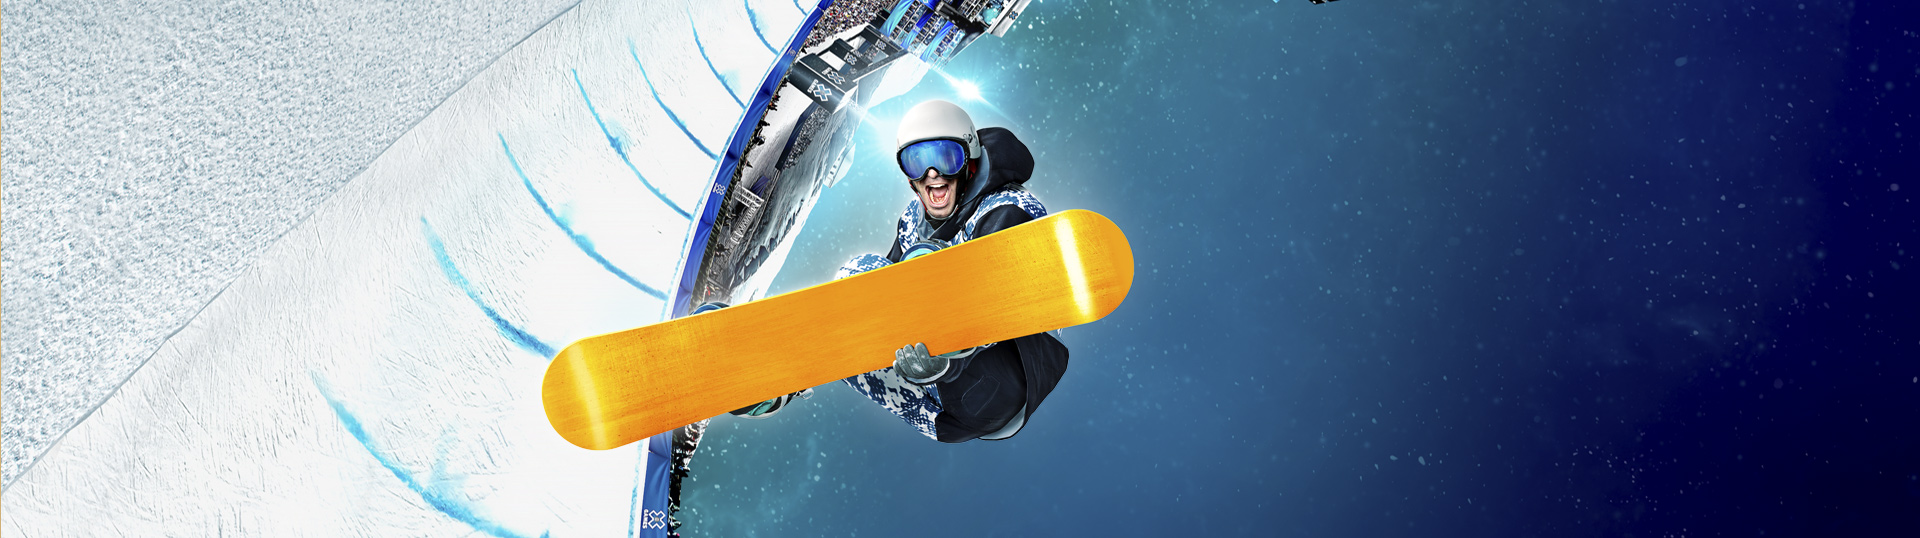 X Games splash art of snowboarder performing a trick